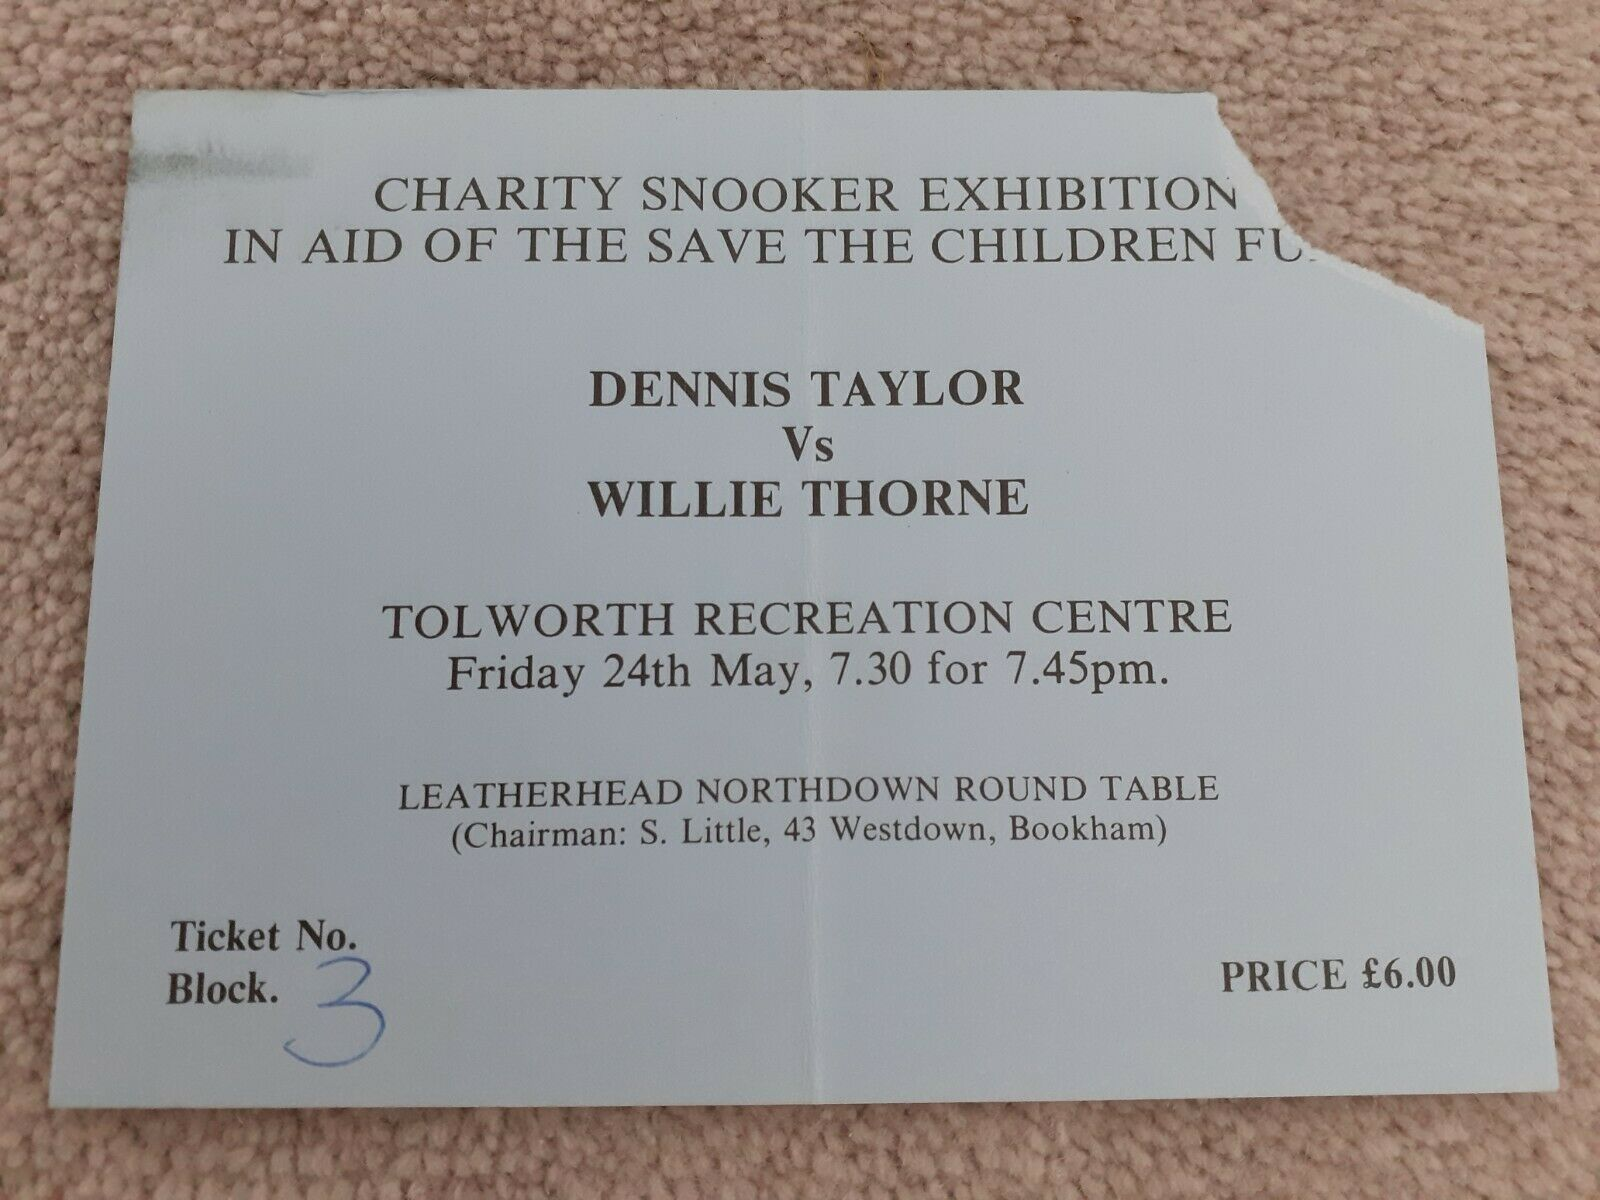 CHARITY SNOOKER DENNIS TAYLOR V WILLIE THORNE USED TICKET STUB 24.5.85 VG COND